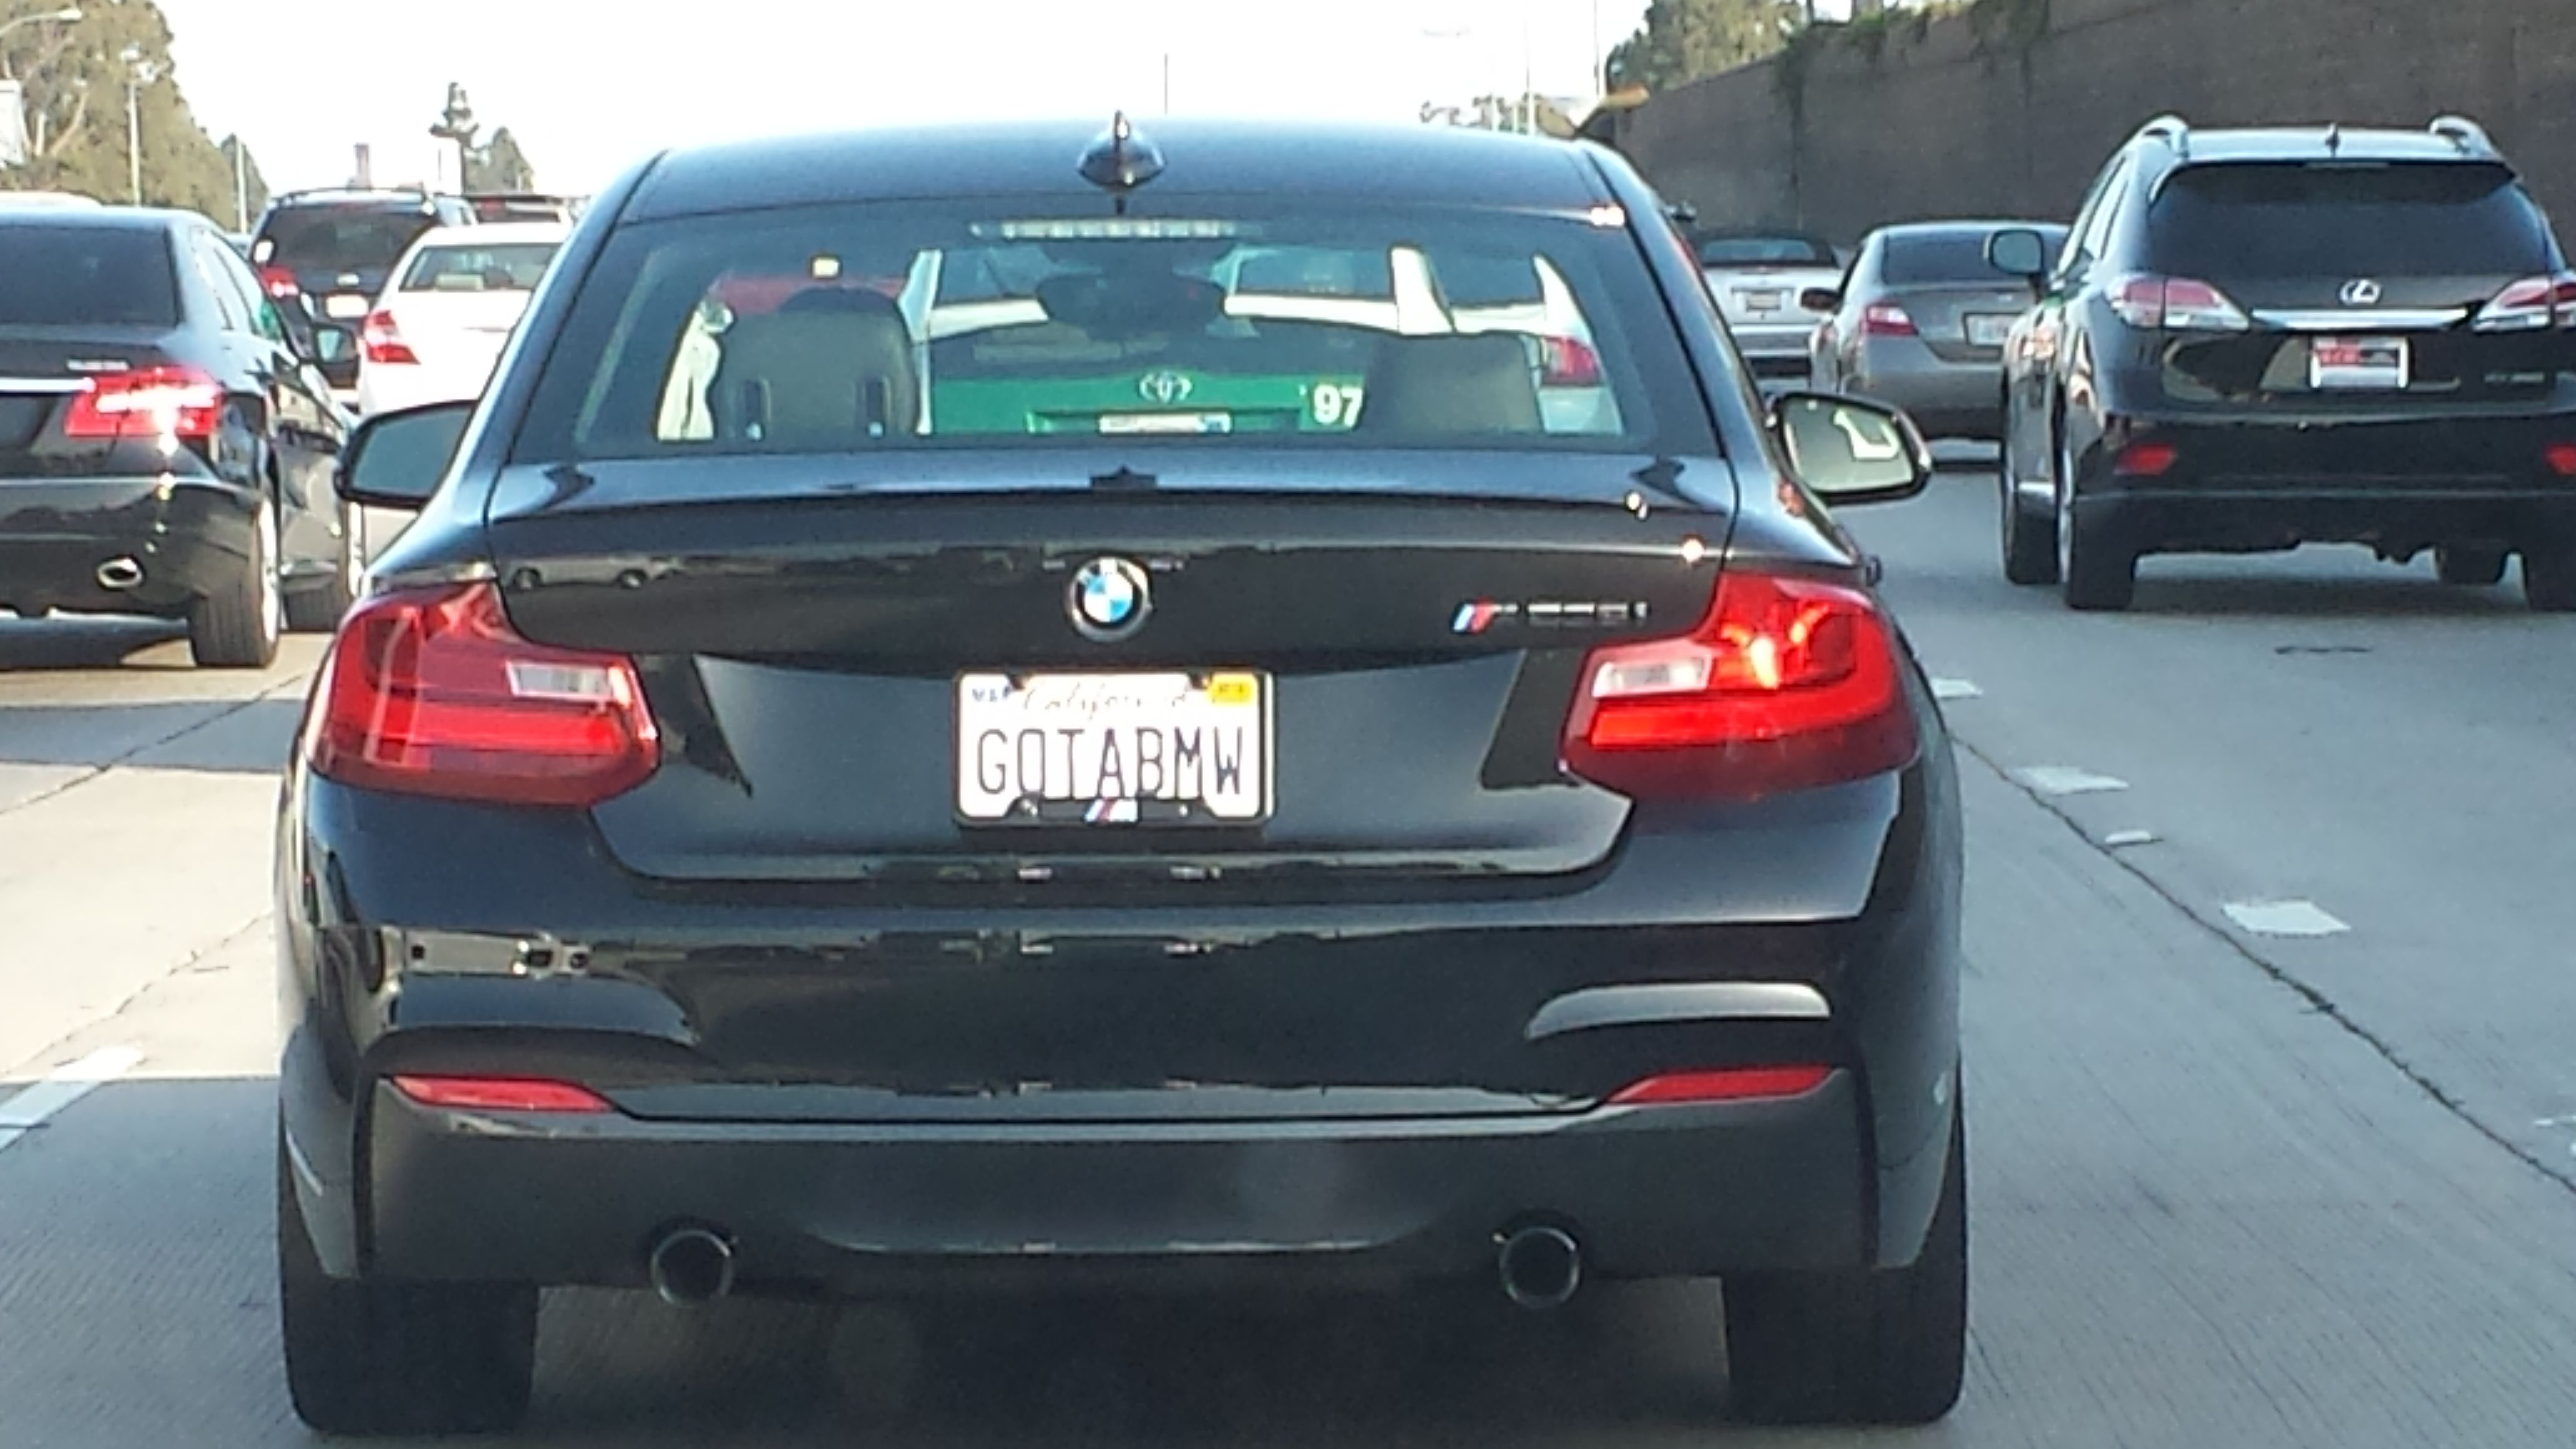 Pin On License Plates